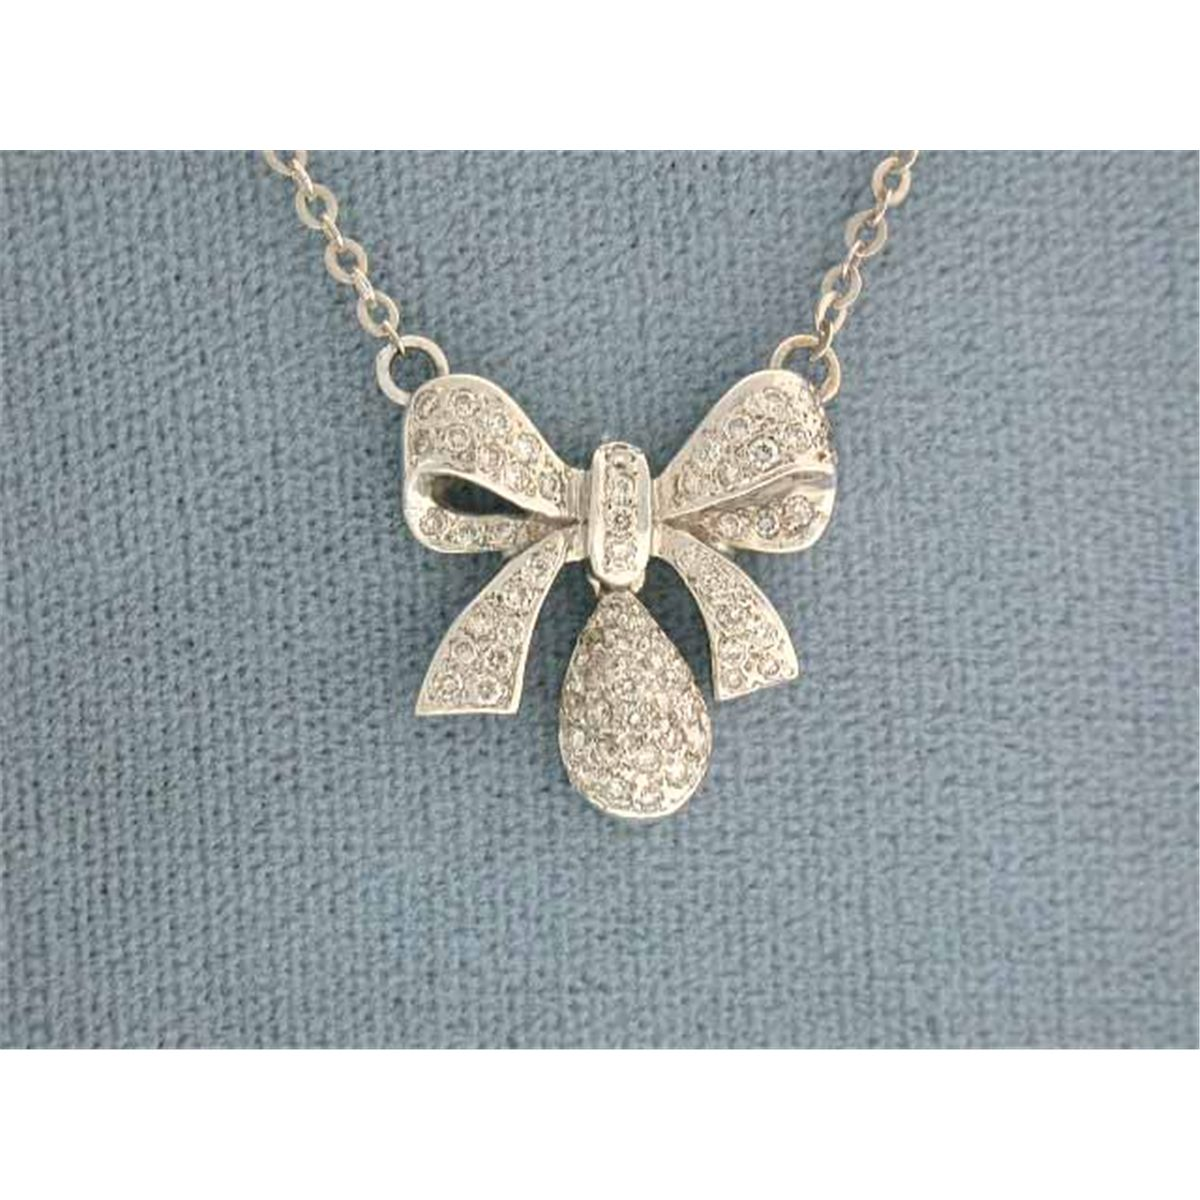 products collections mafaldine bella figura jewellery ribbon pendants pendant unforgettable necklaces